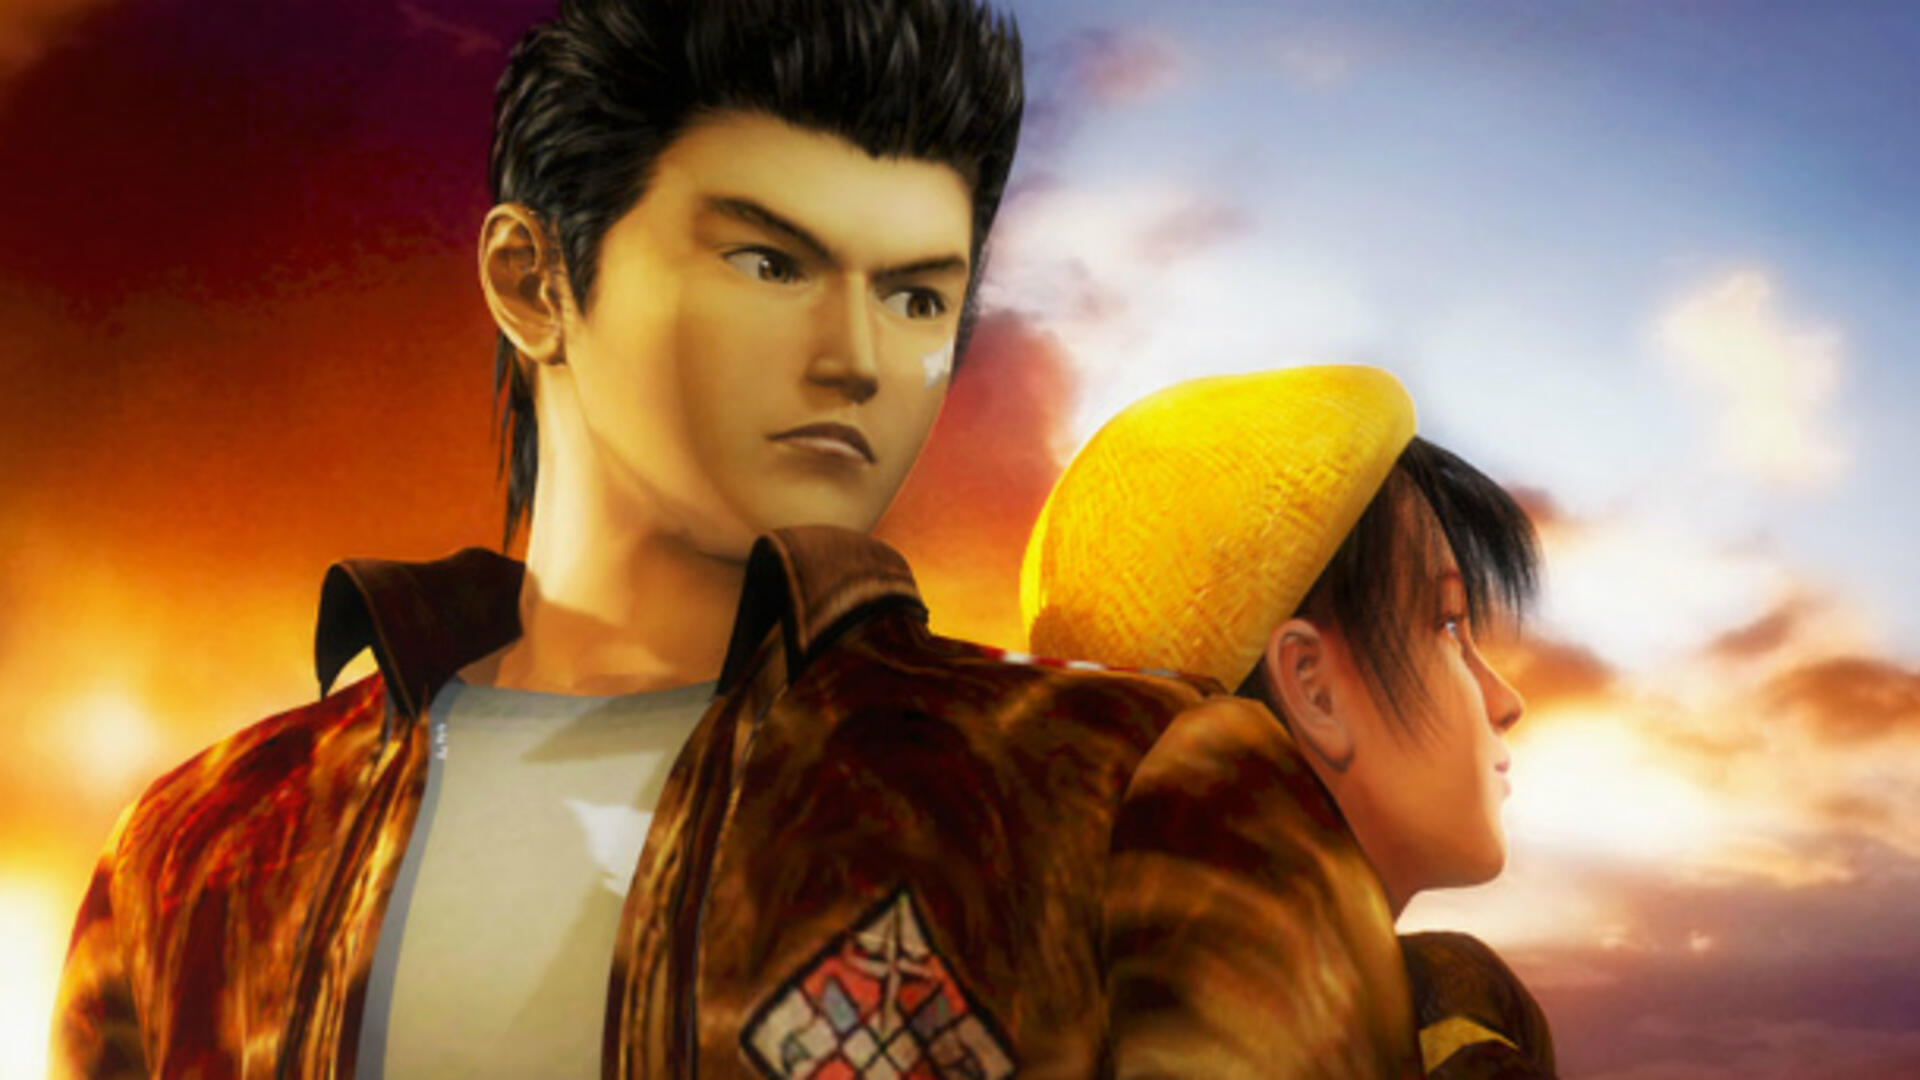 Yu Suzuki Talks Shenmue 3 Mini-Games, Combat, and Sidequests in New Interviews